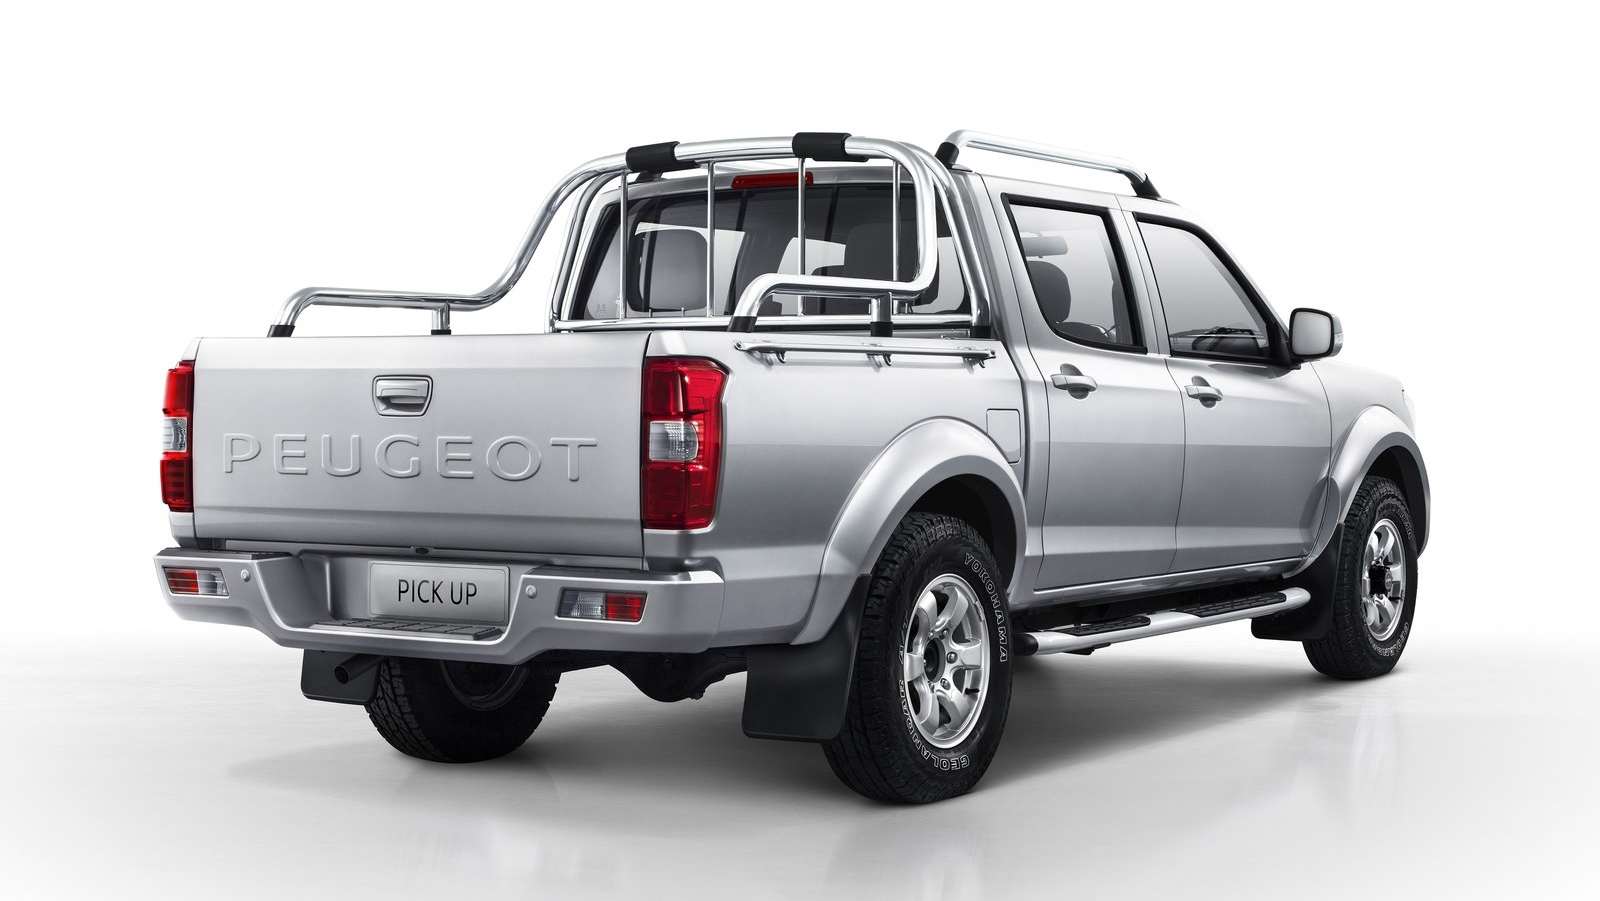 Peugeot Pick Up – a robust workhorse truck for Africa Paul